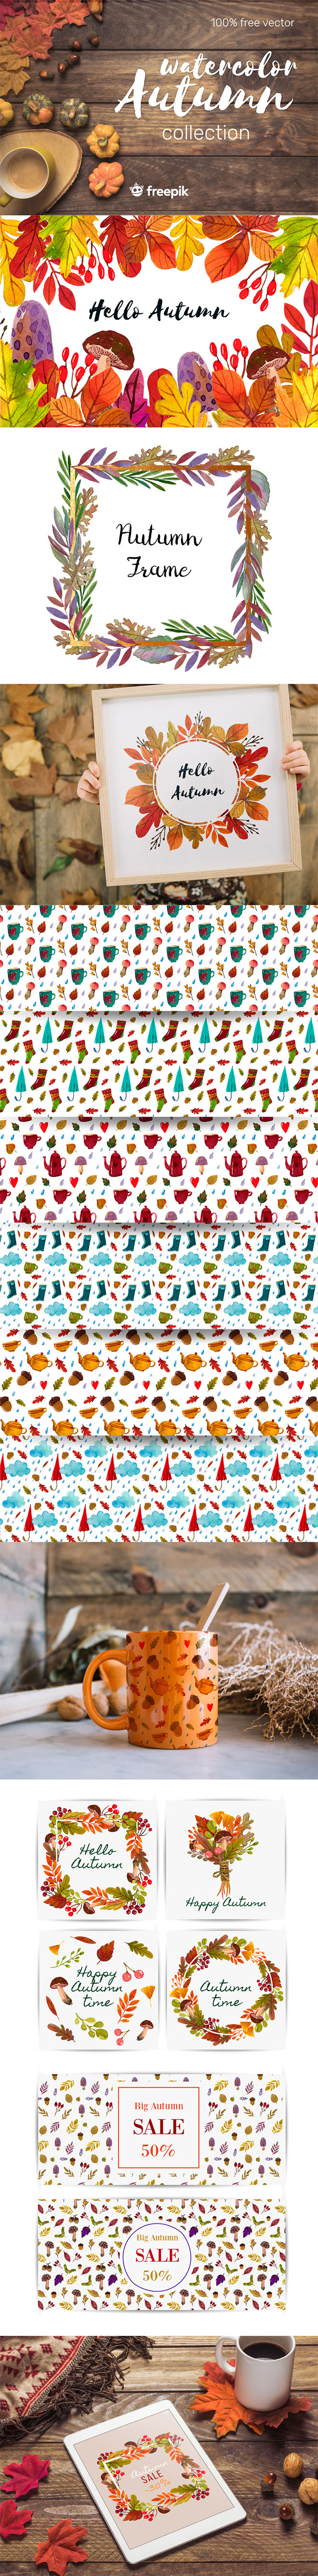 Autumn Watercolour Graphics and Patterns for Premium Members